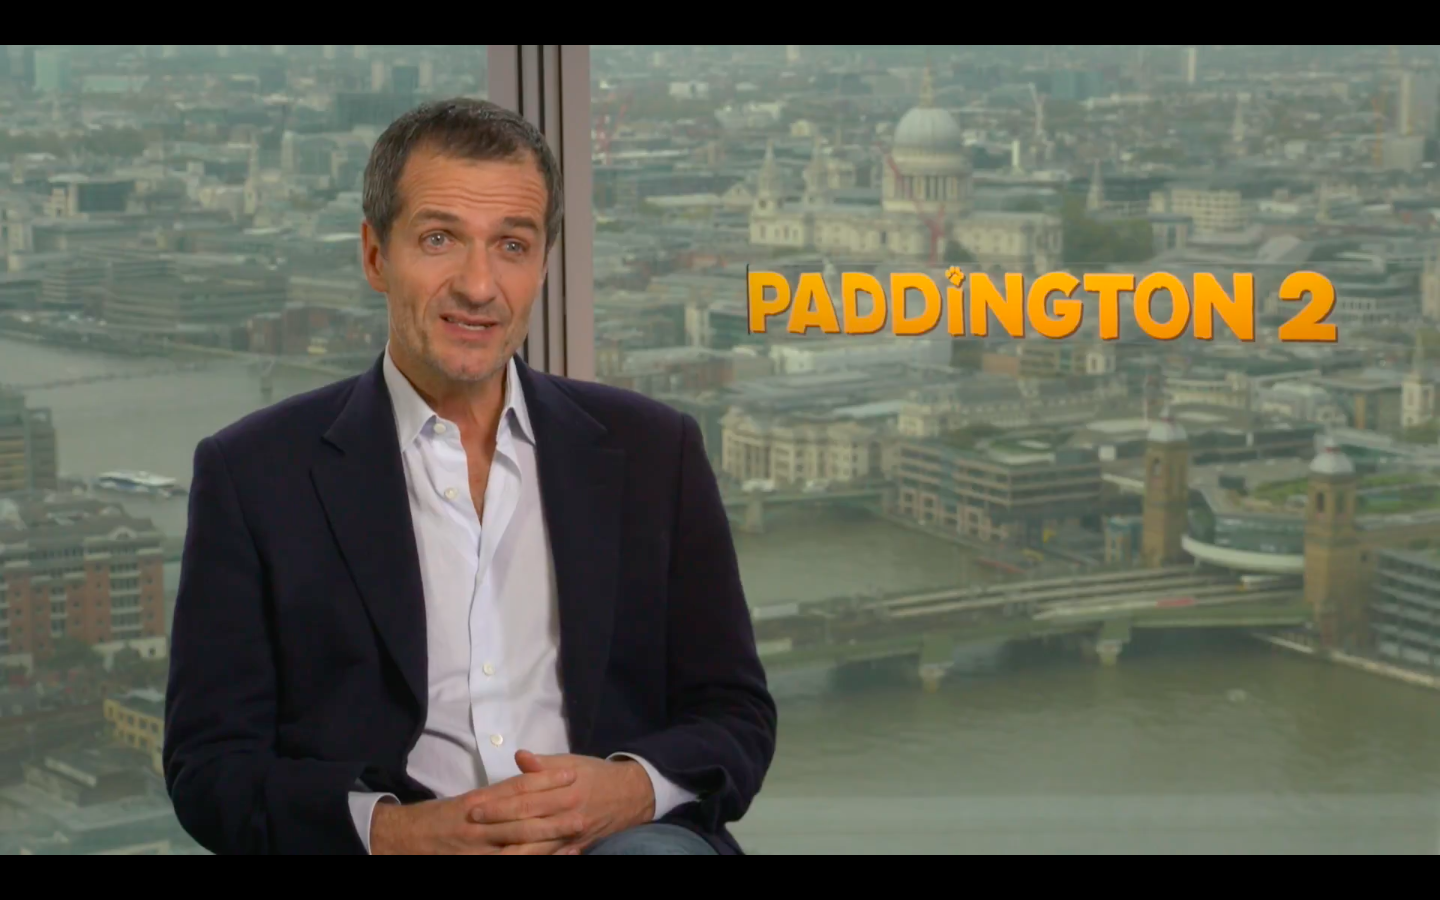 David Heyman Paddington 2 interview